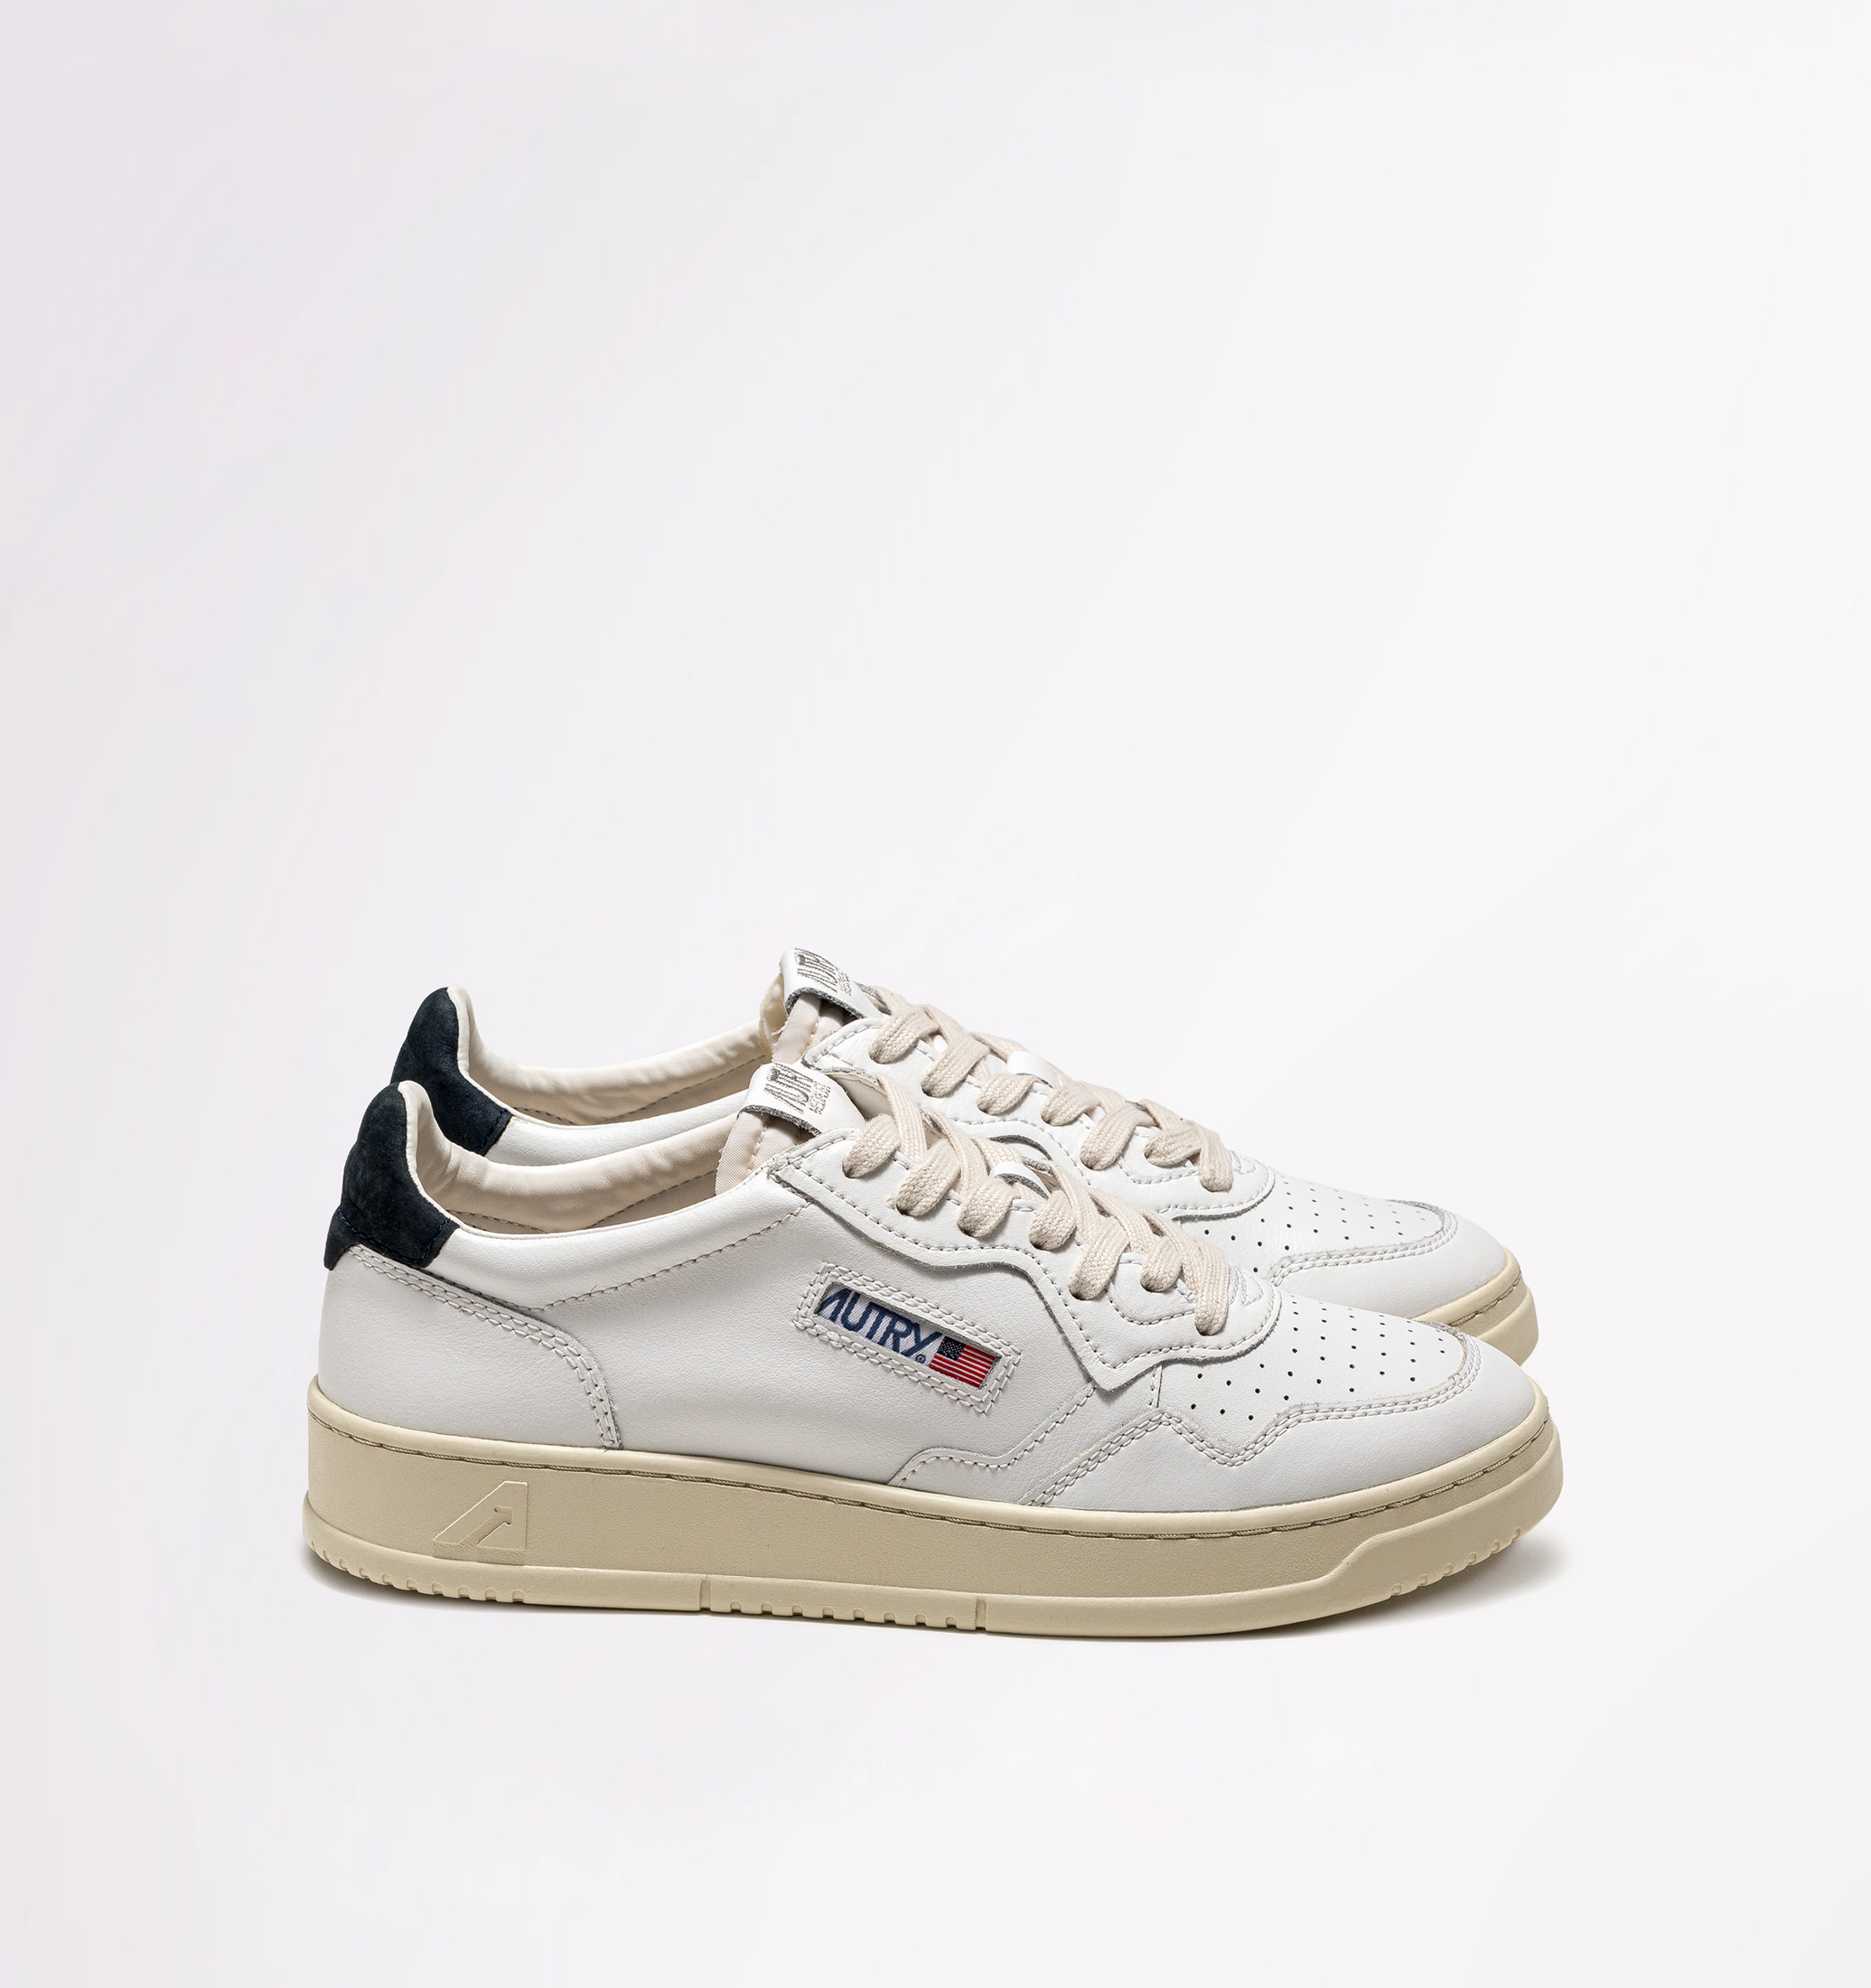 autry-01-low-leather-nubuck-white-space-side-both